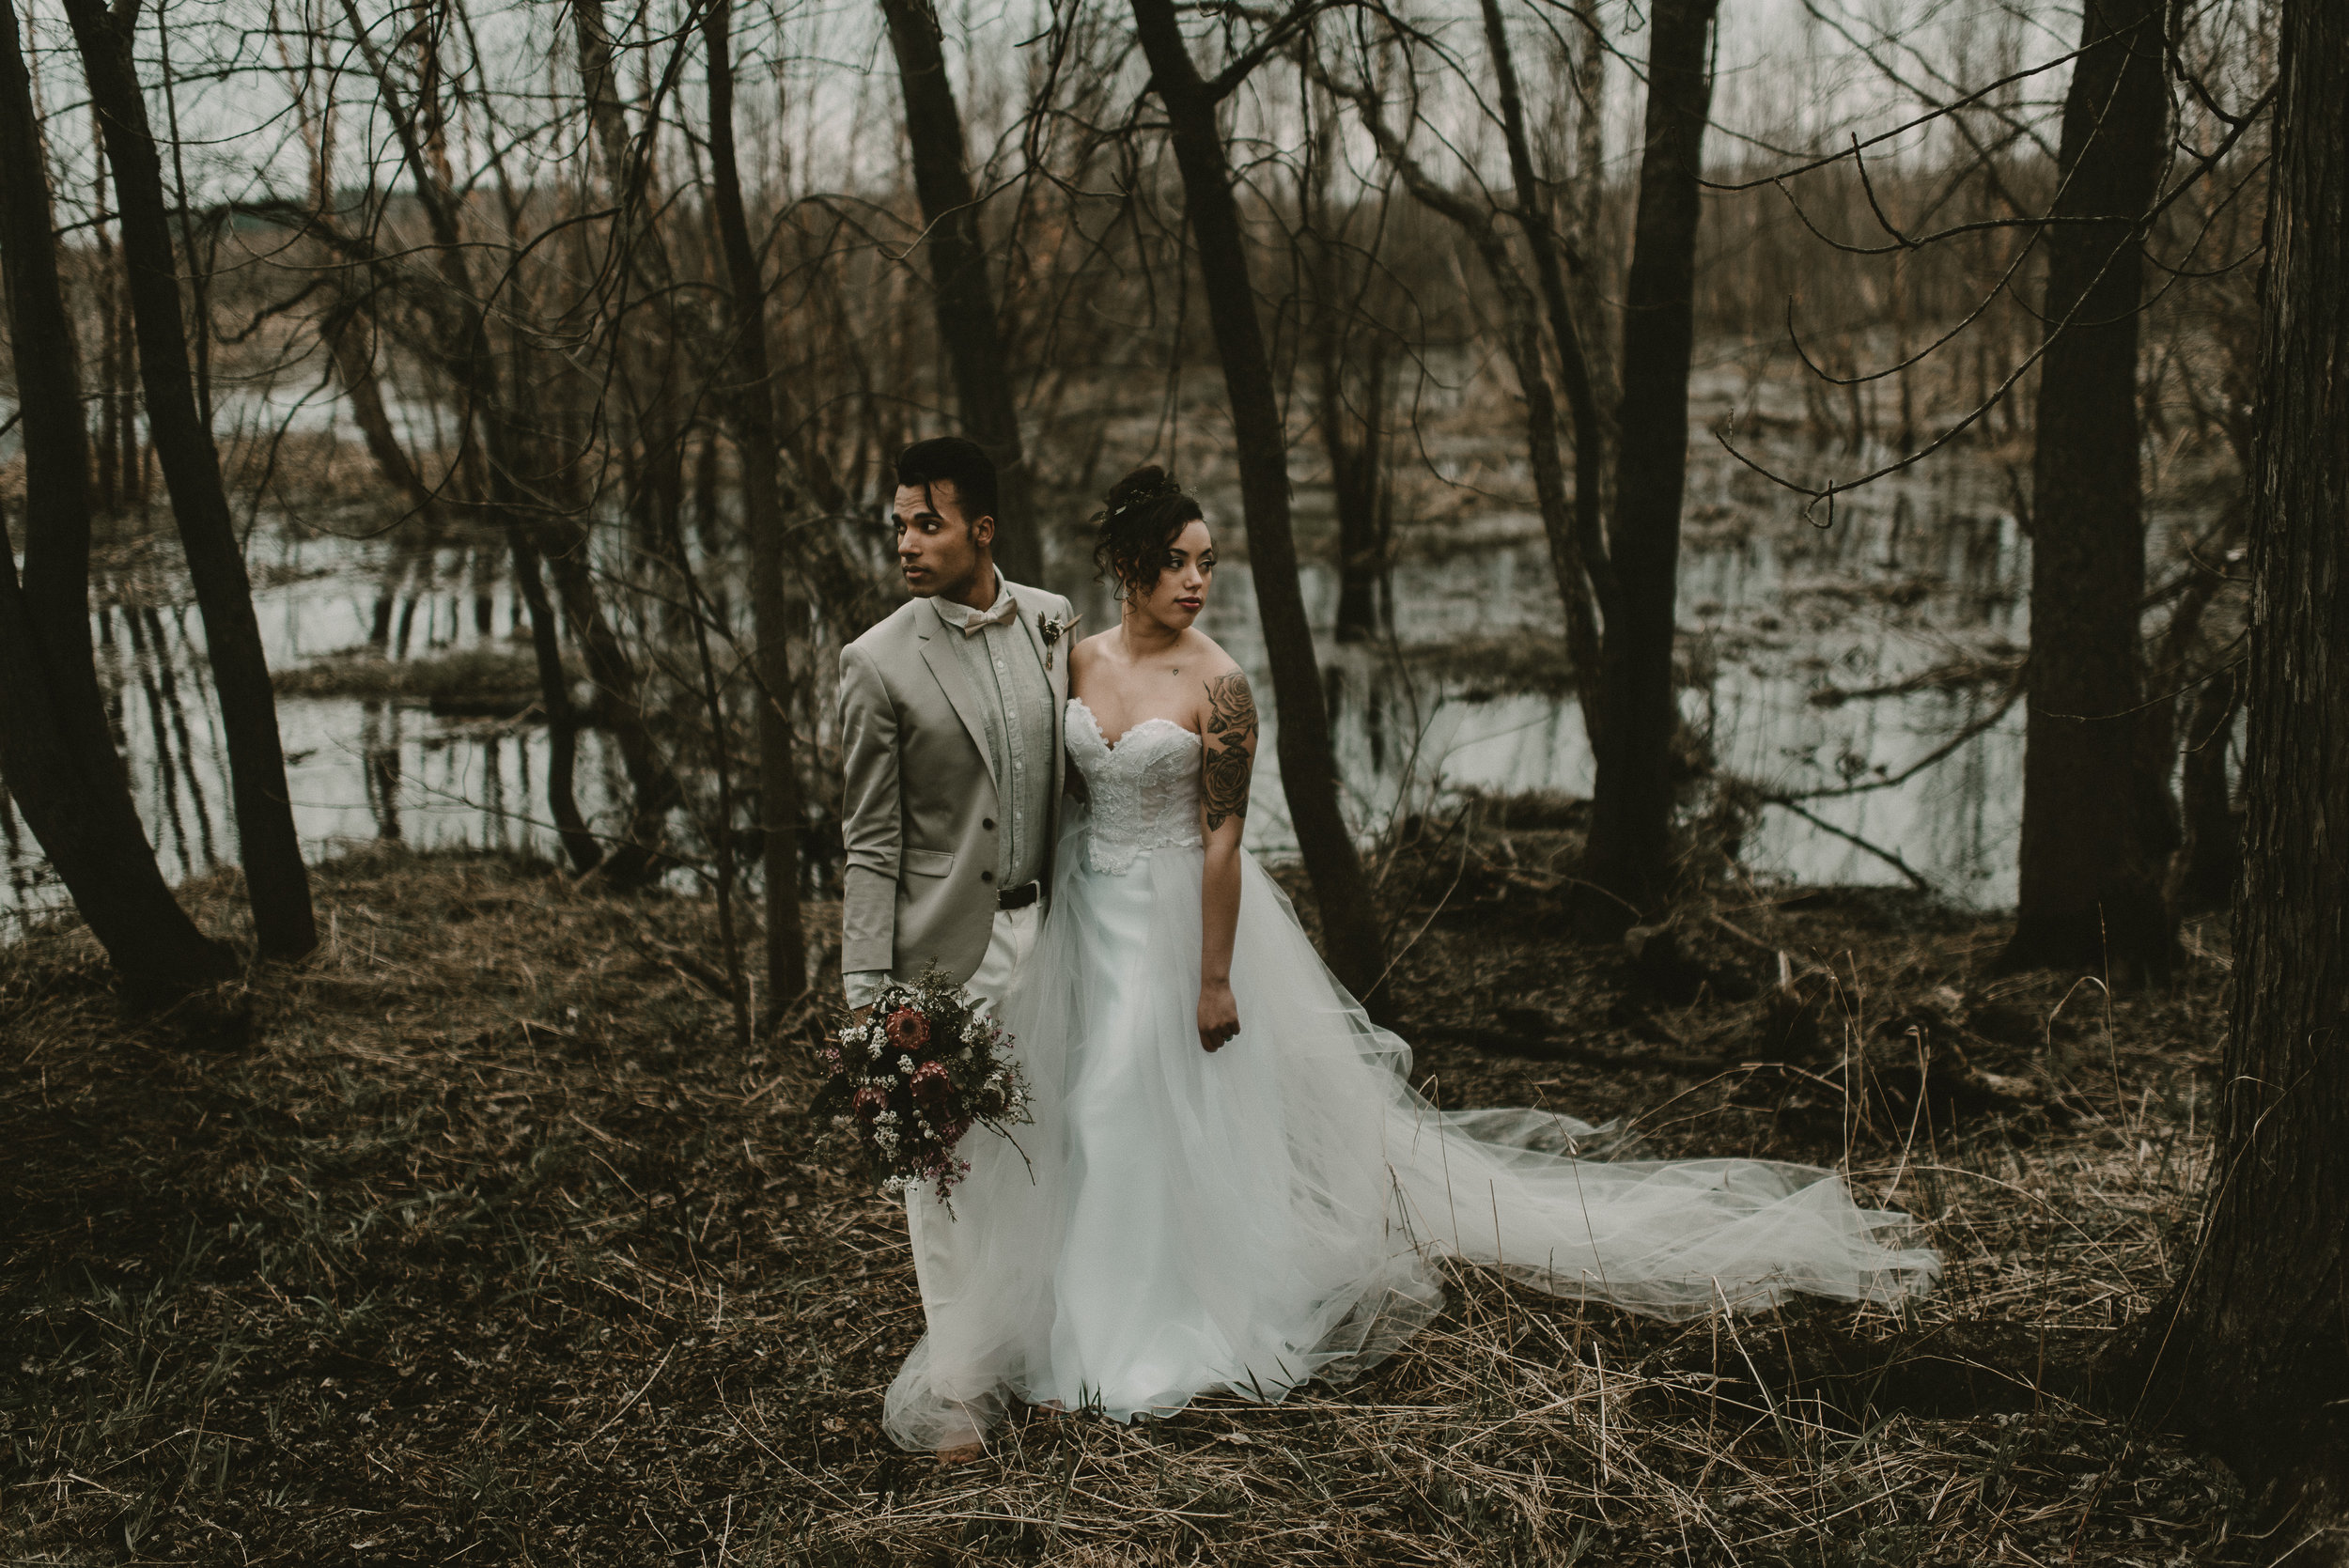 Wisconsin dells and Madison wedding planner